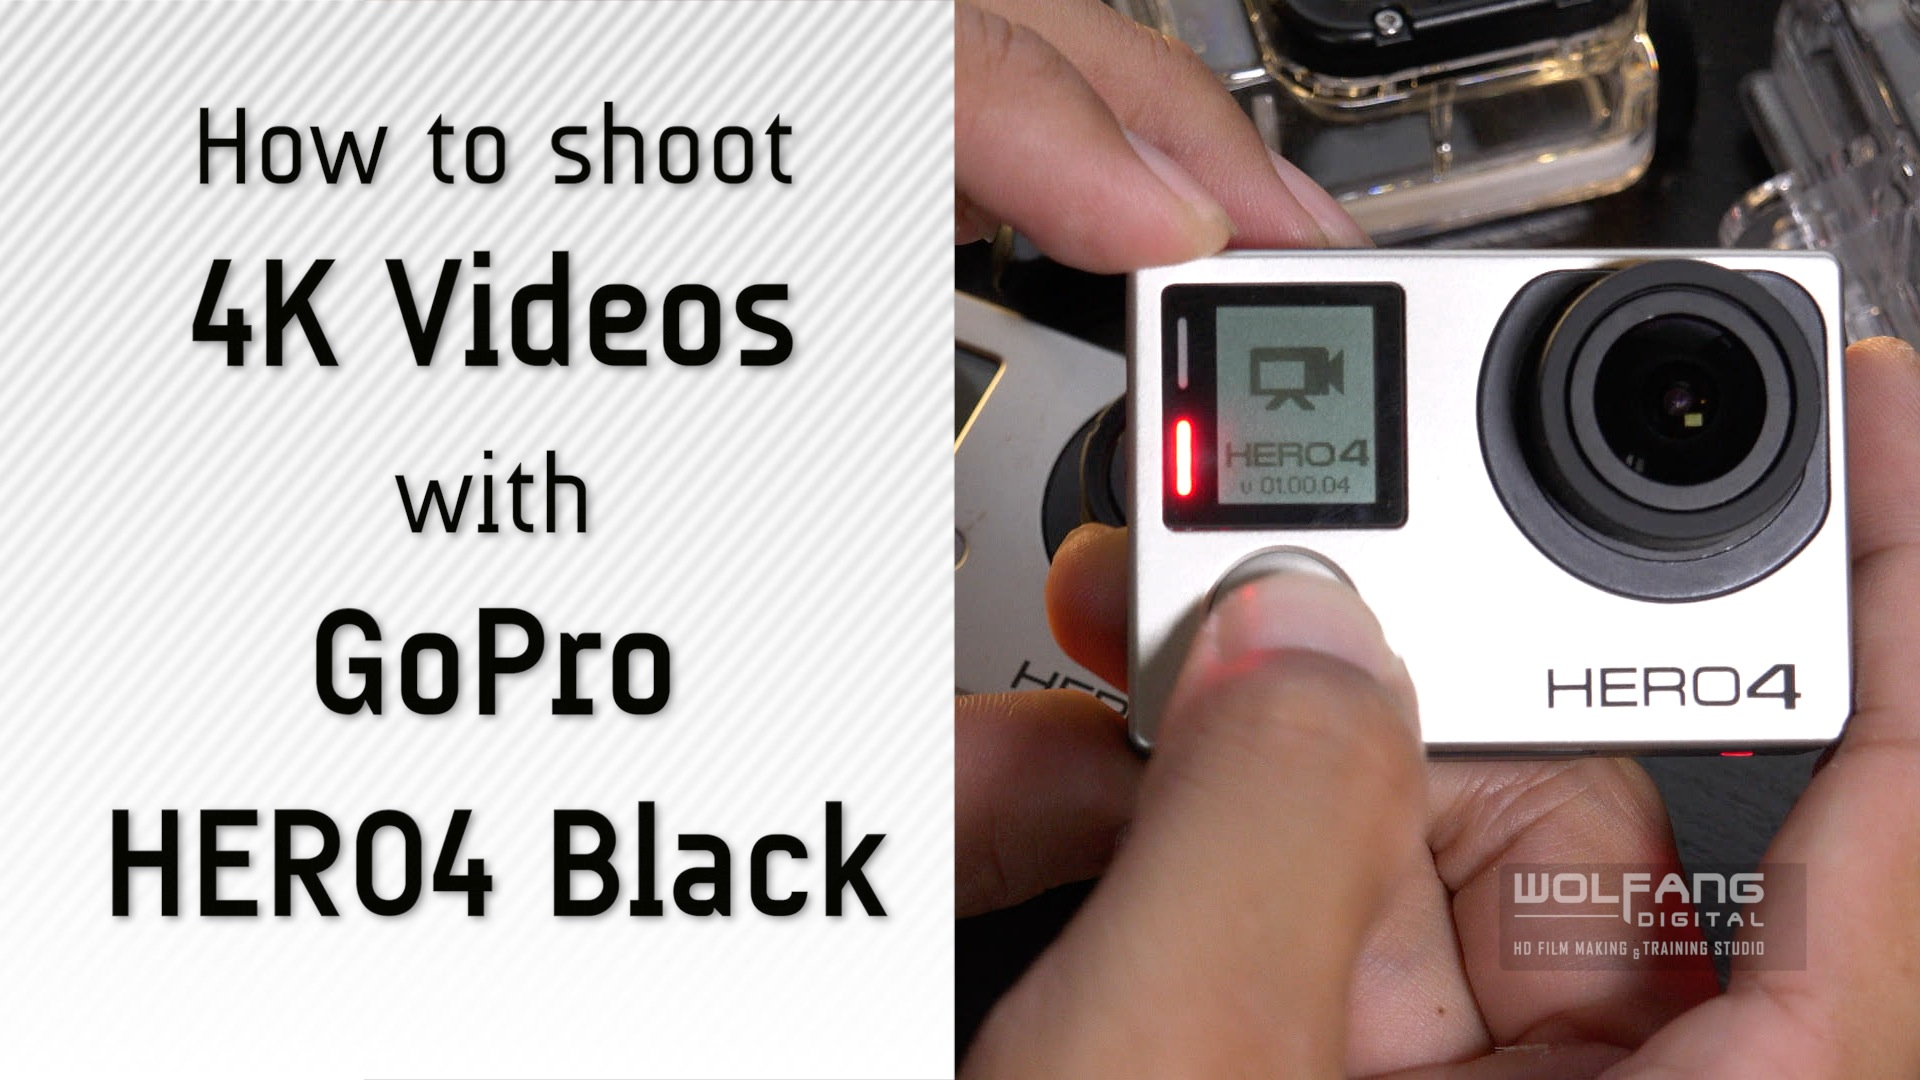 Learn how to shoot 4K videos with GoPro Hero4 Black